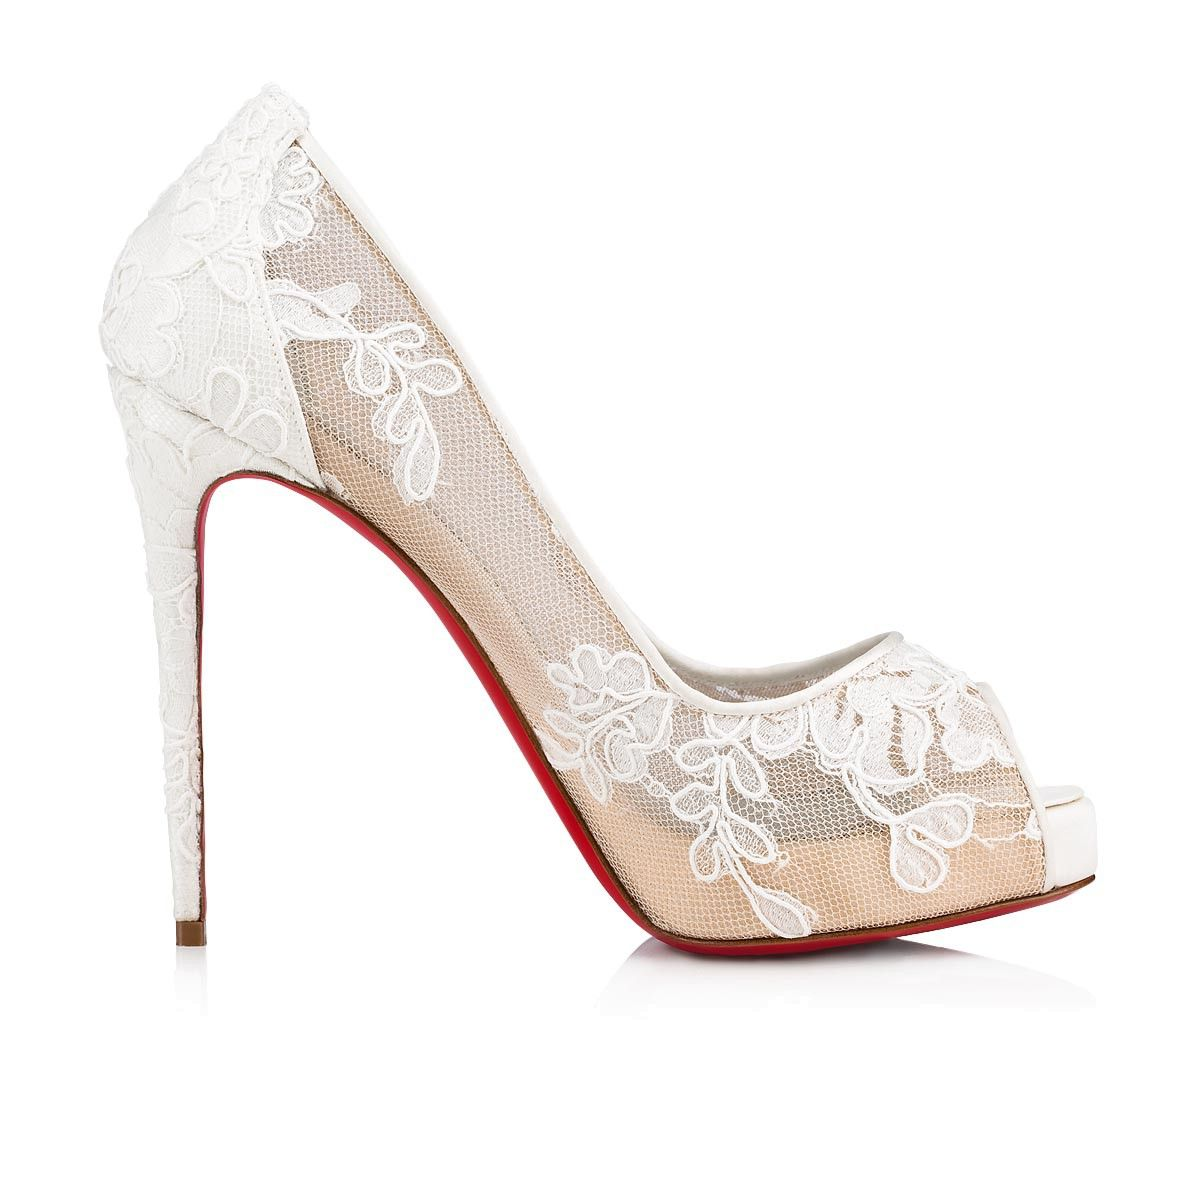 VERY LACE 120 Off White Dentelle Lace